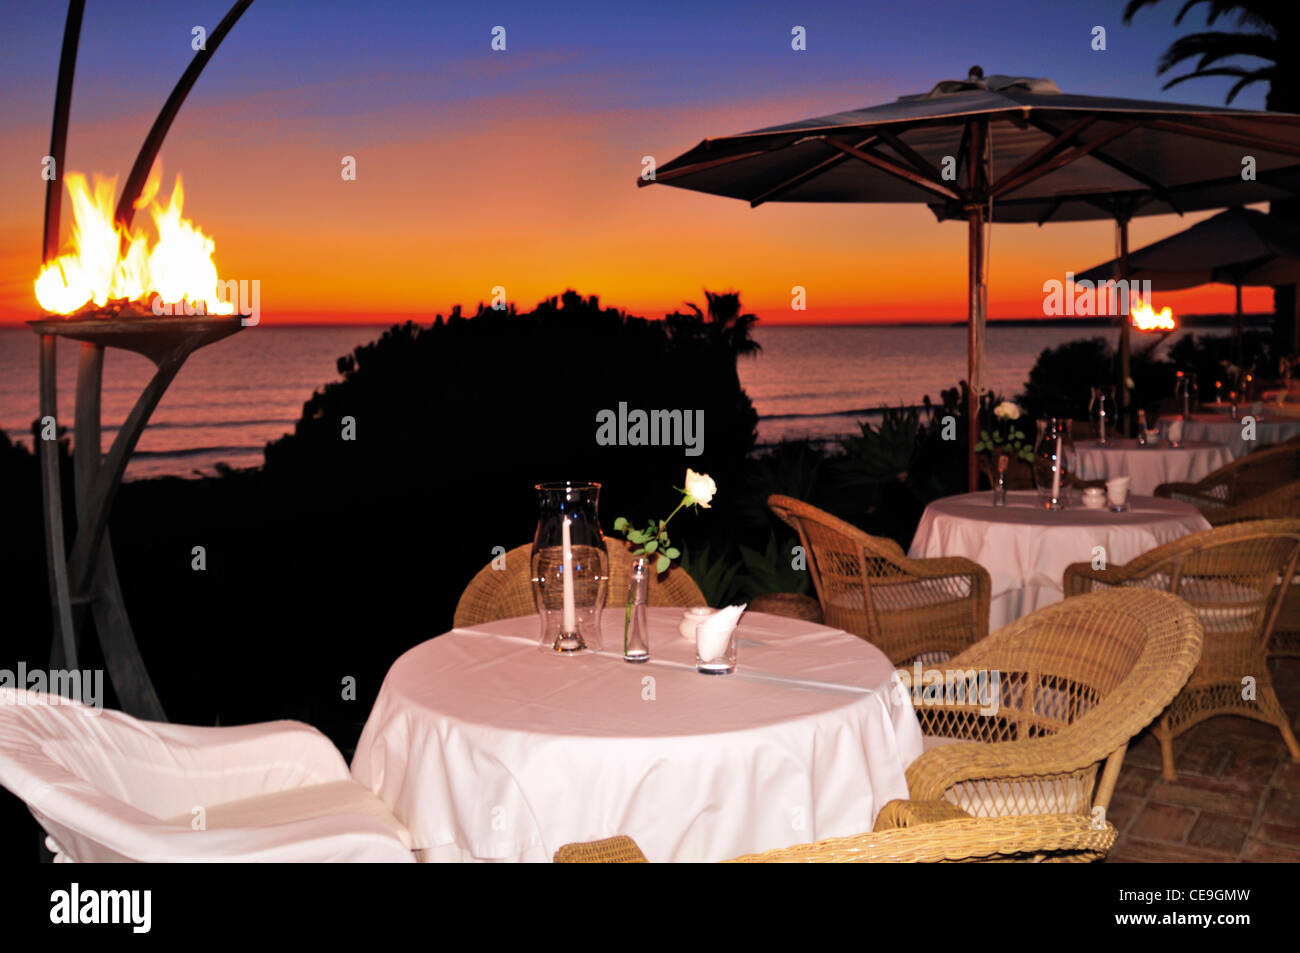 Portugal, Algarve: Sunset view from the restaurant terrace of Hotel Vila  Galé during the Gourmet Festival - Stock Image